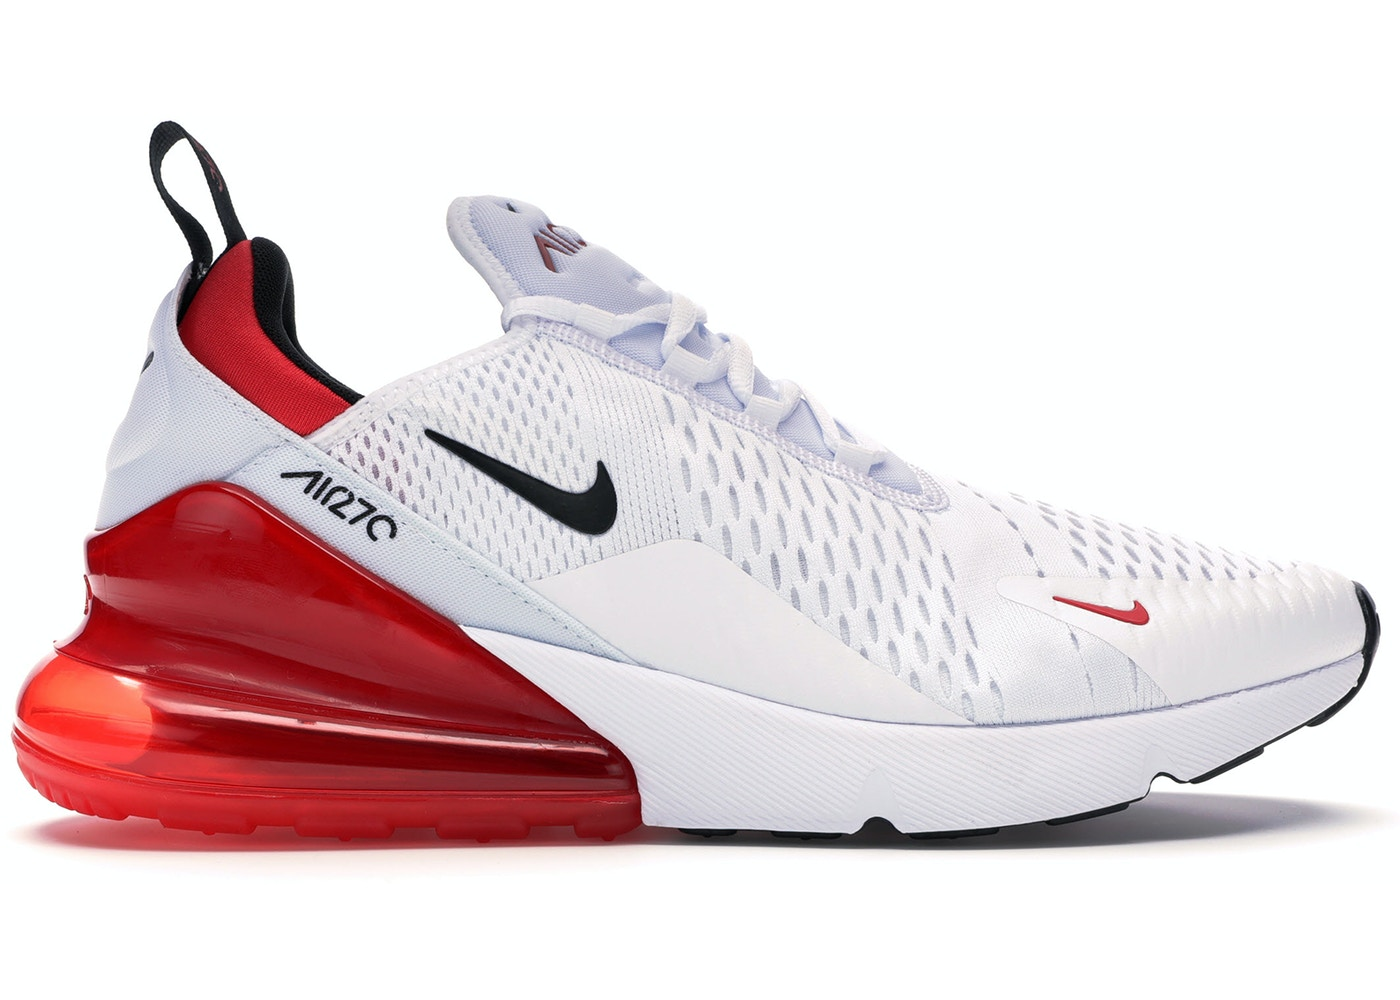 hot sale online 82404 ce2ae Buy Nike Air Max 270 Shoes & Deadstock Sneakers